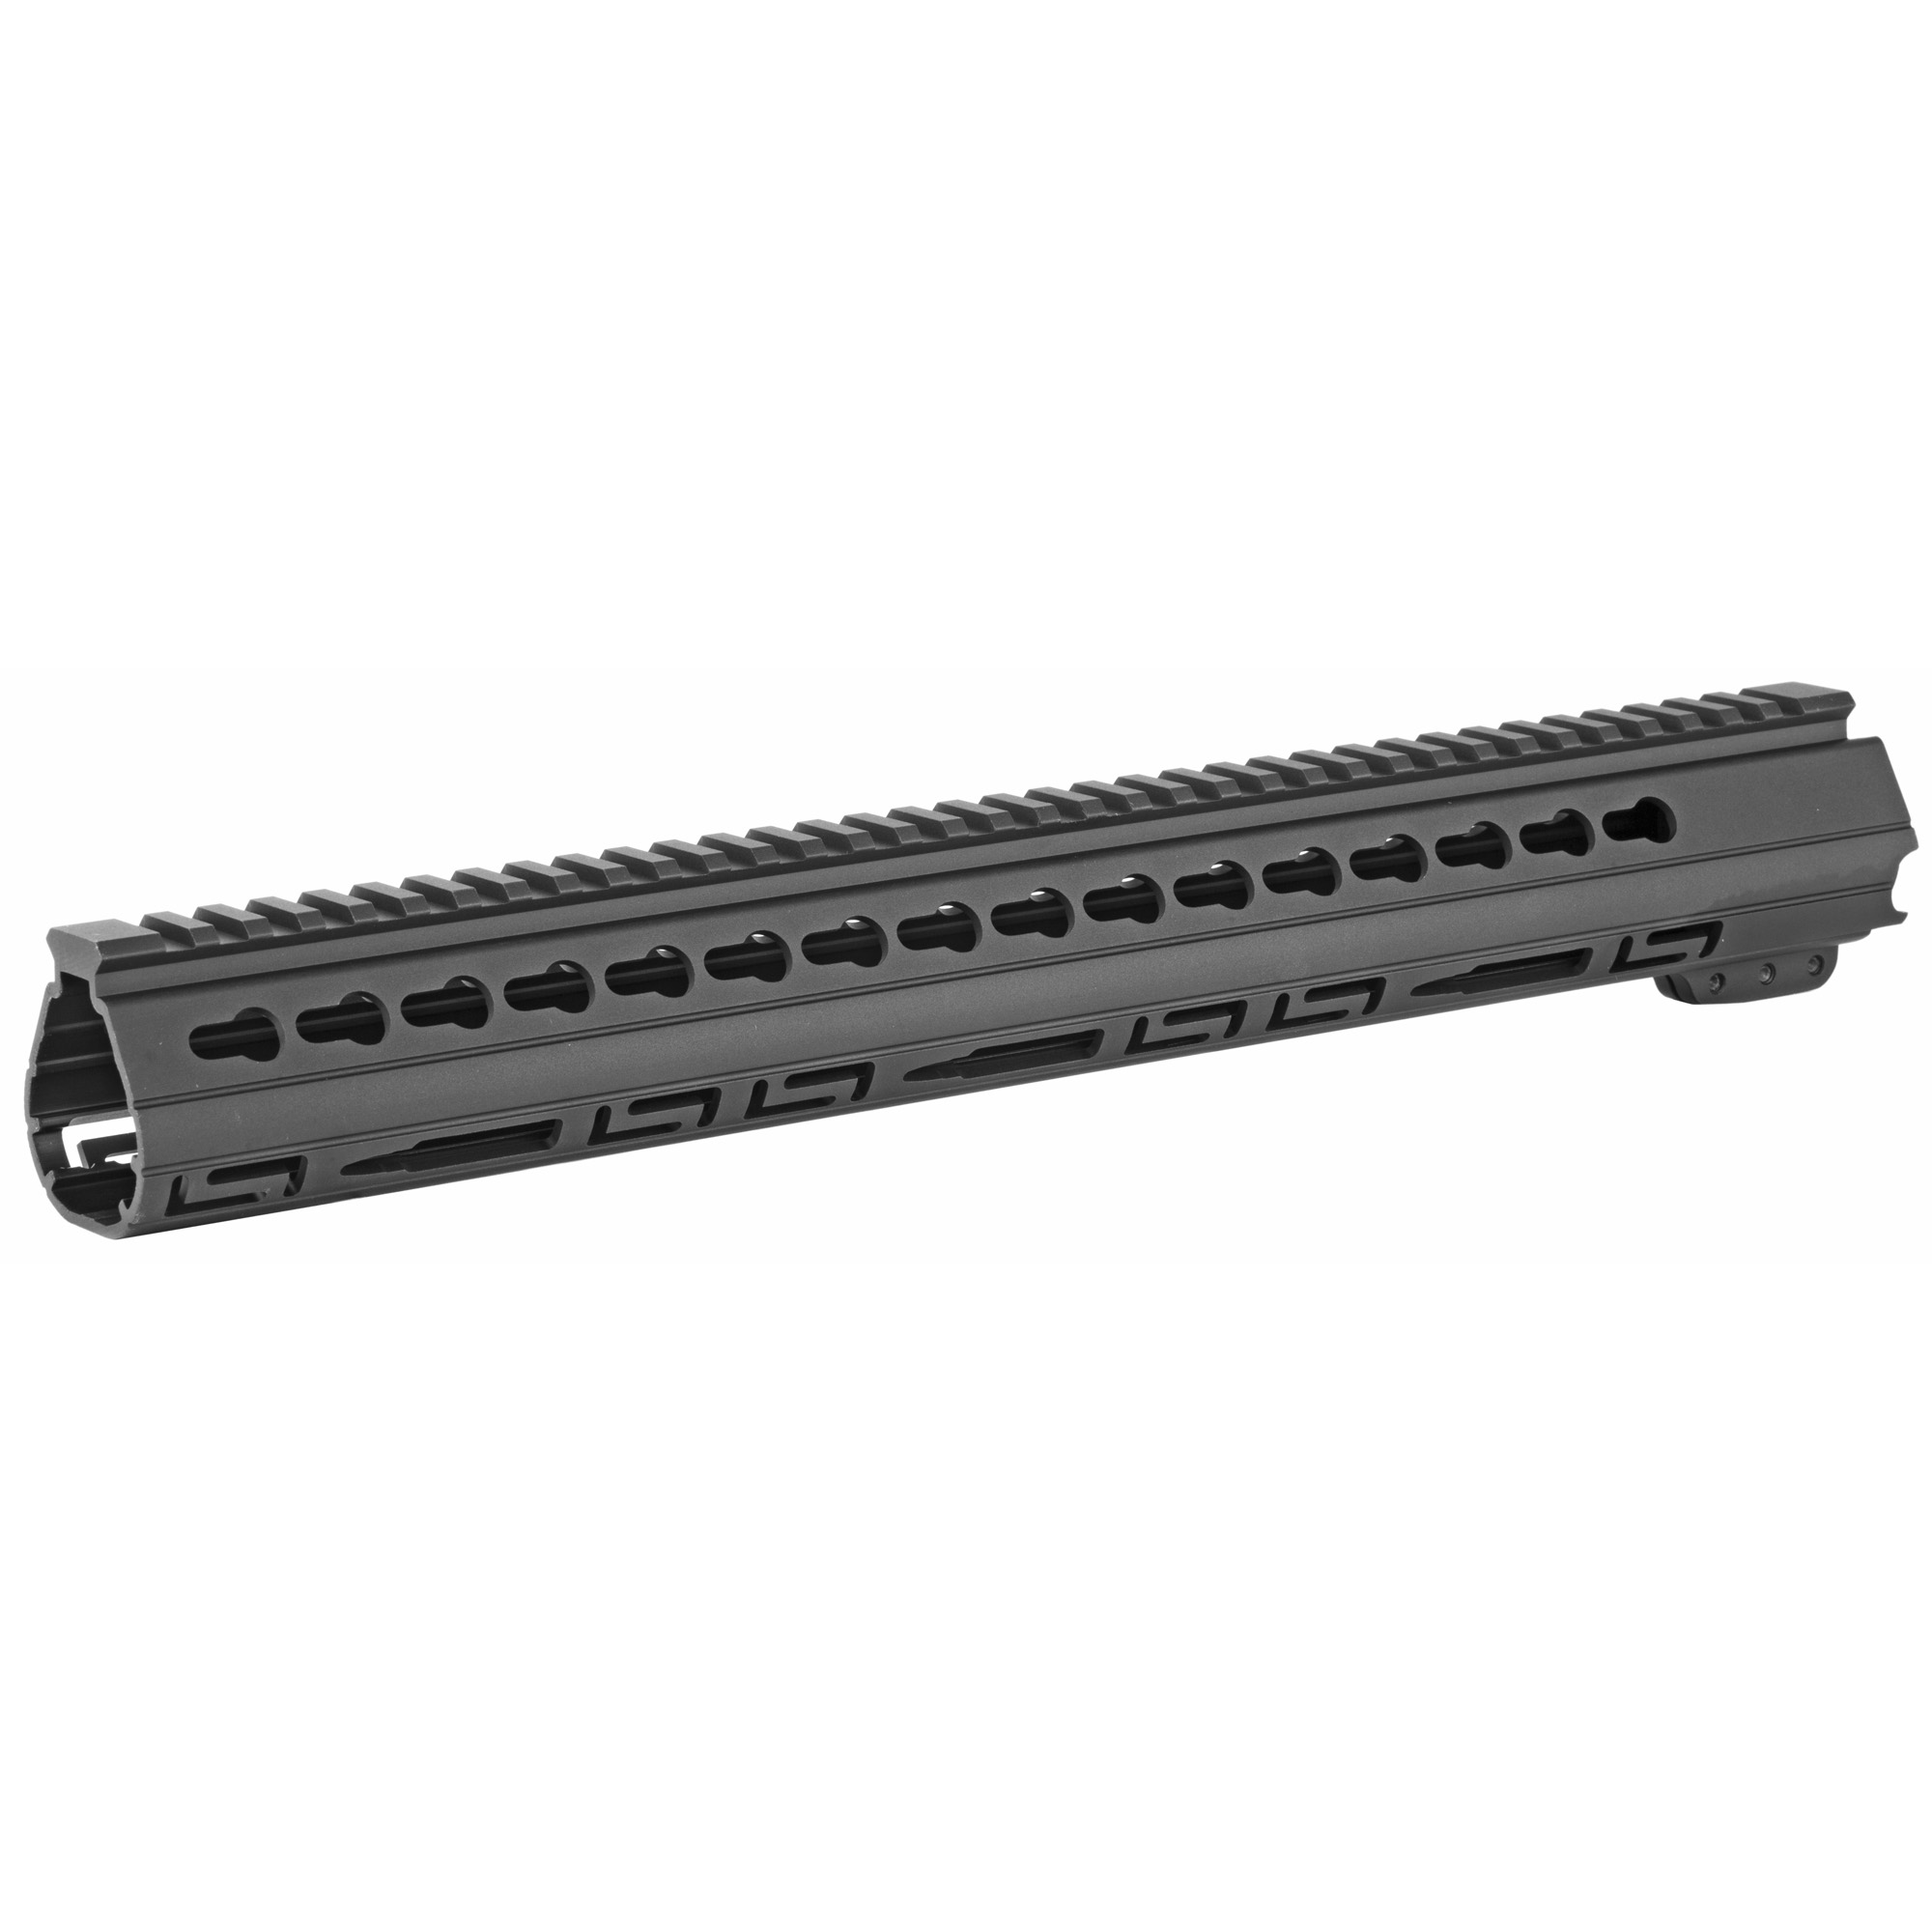 "The Palm Handguard(TM)"" 15"" free float tube features a triangular profile that conforms to the palm of your hand giving you a secure and comfortable grip on your AR. The Slotted versions of the Palm Handguard(TM) provides a Picatinny top rail and KeyMod slots along both upper sides"" as well as a row of KeyMod slots along the bottom to accommodate accessories such as a bipod. The lower sides are adorned with the Luth-AR ""Double L"""" and Cartridge lightning/cooling cuts to further reduce weight and provide heat dissipation with a distinctive good look."